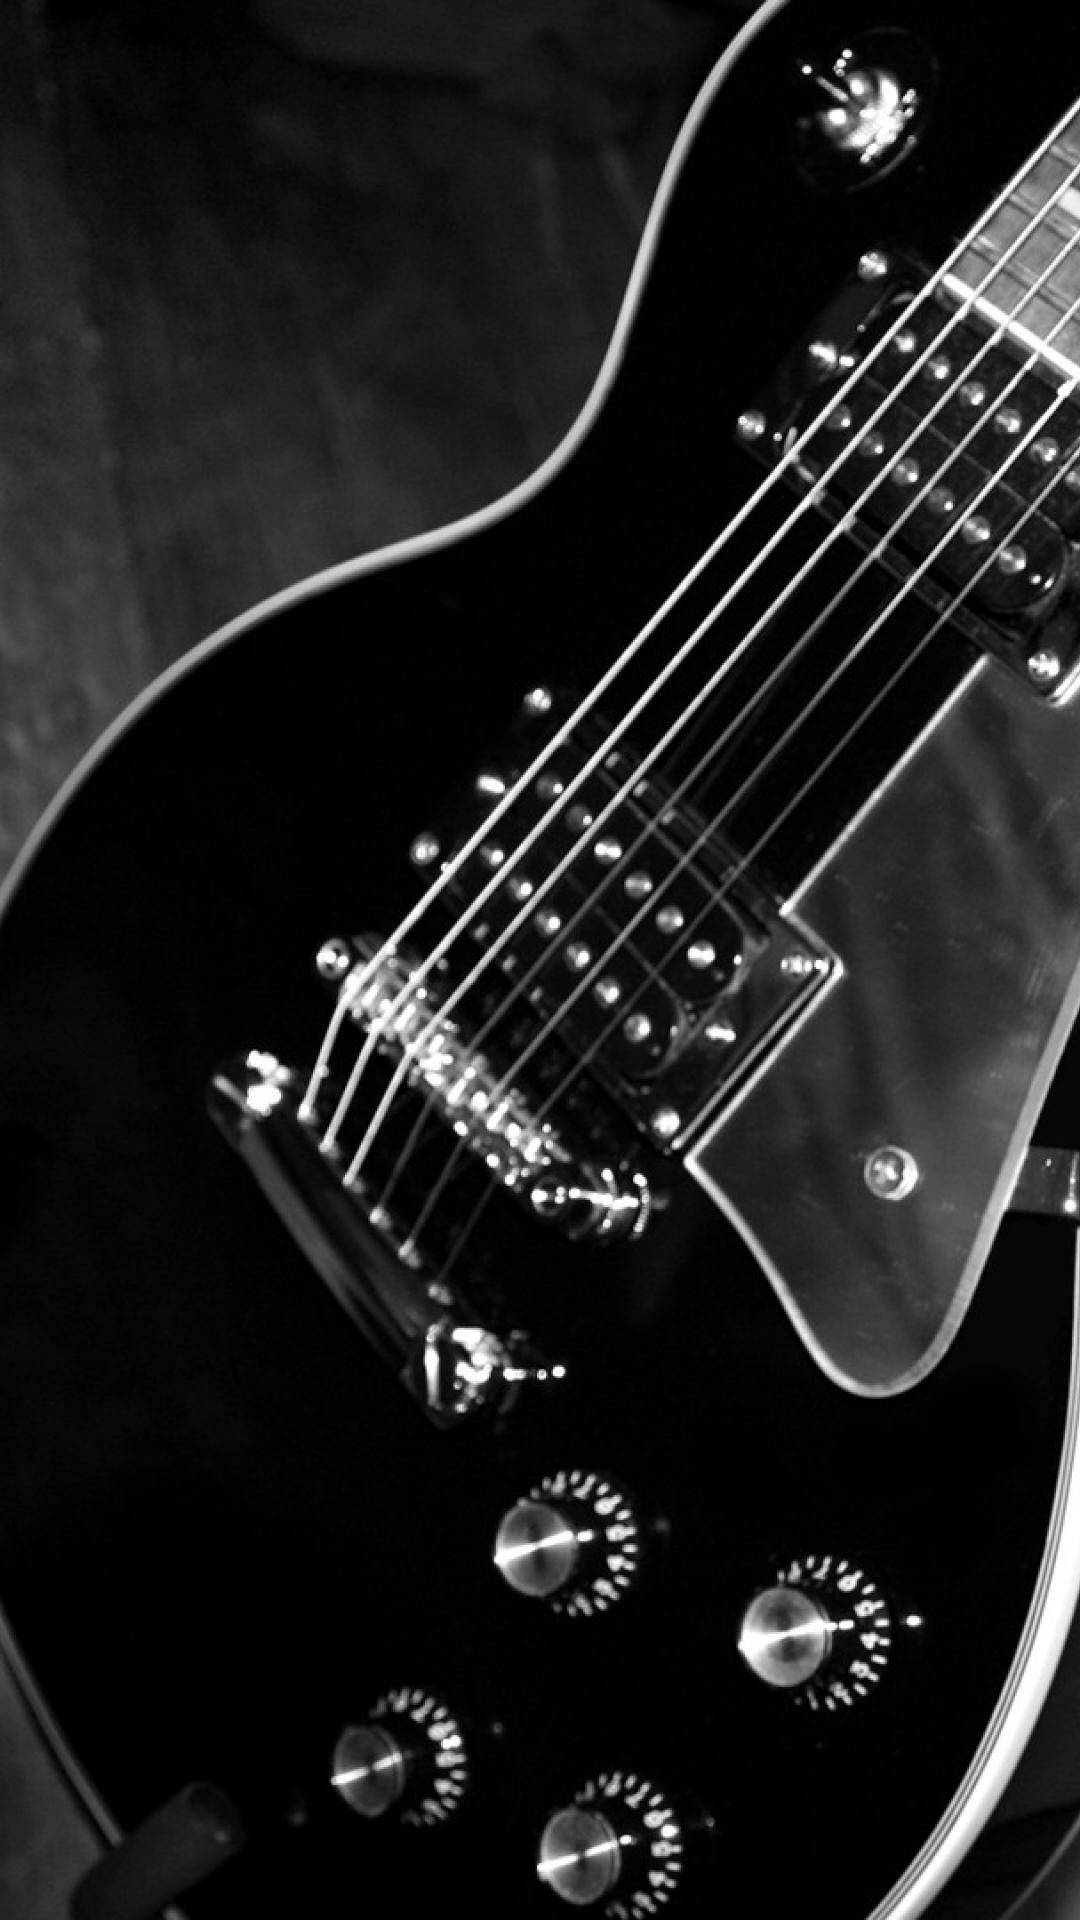 Guitar Wallpaper 60 1080x1920 Pixel Wallpaperpass